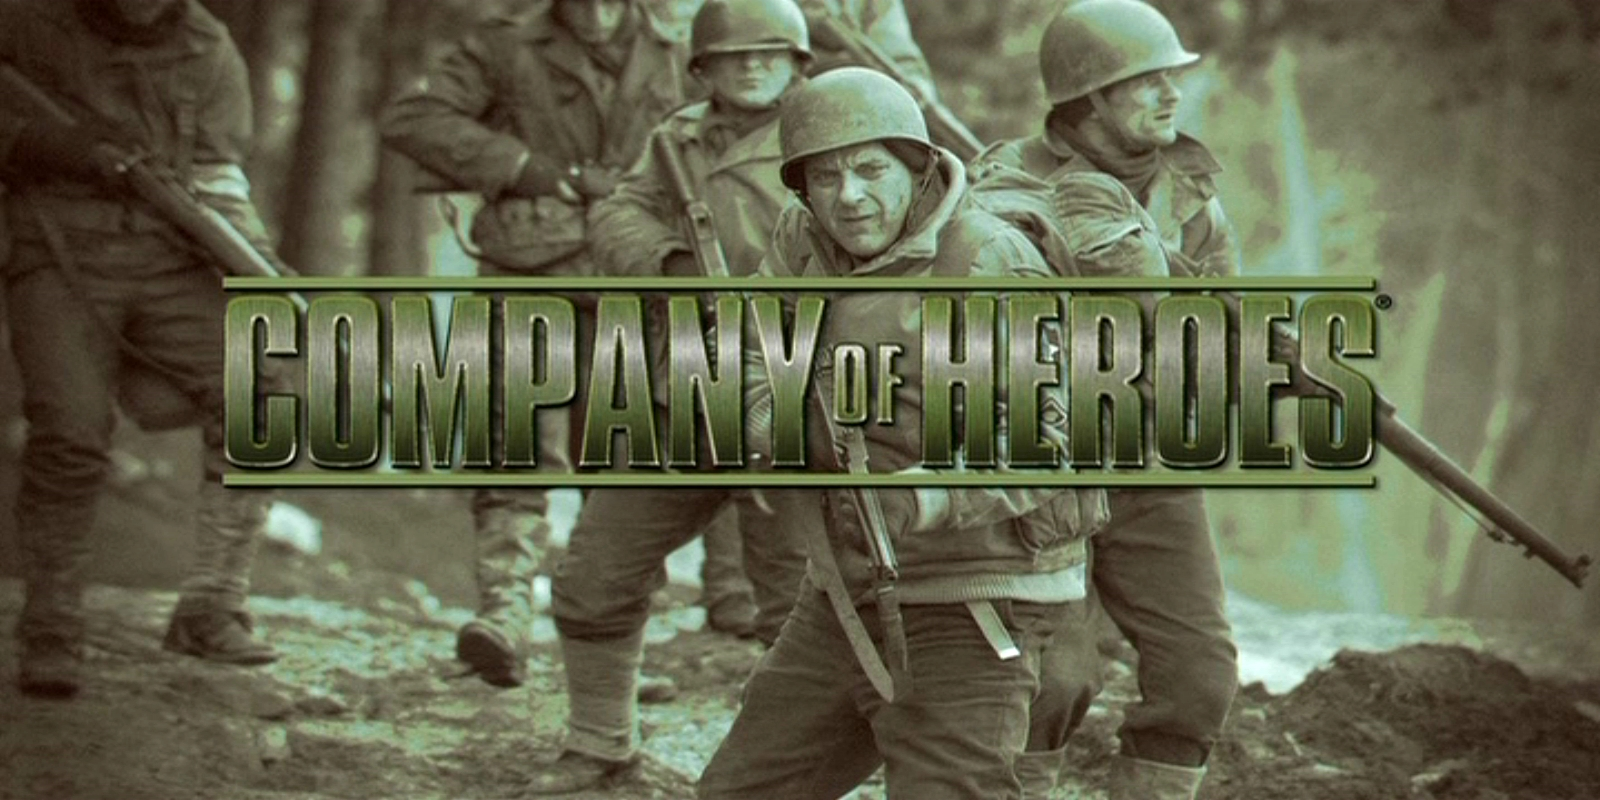 company of heroes wallpaper and background image | 1600x800 | id:336698